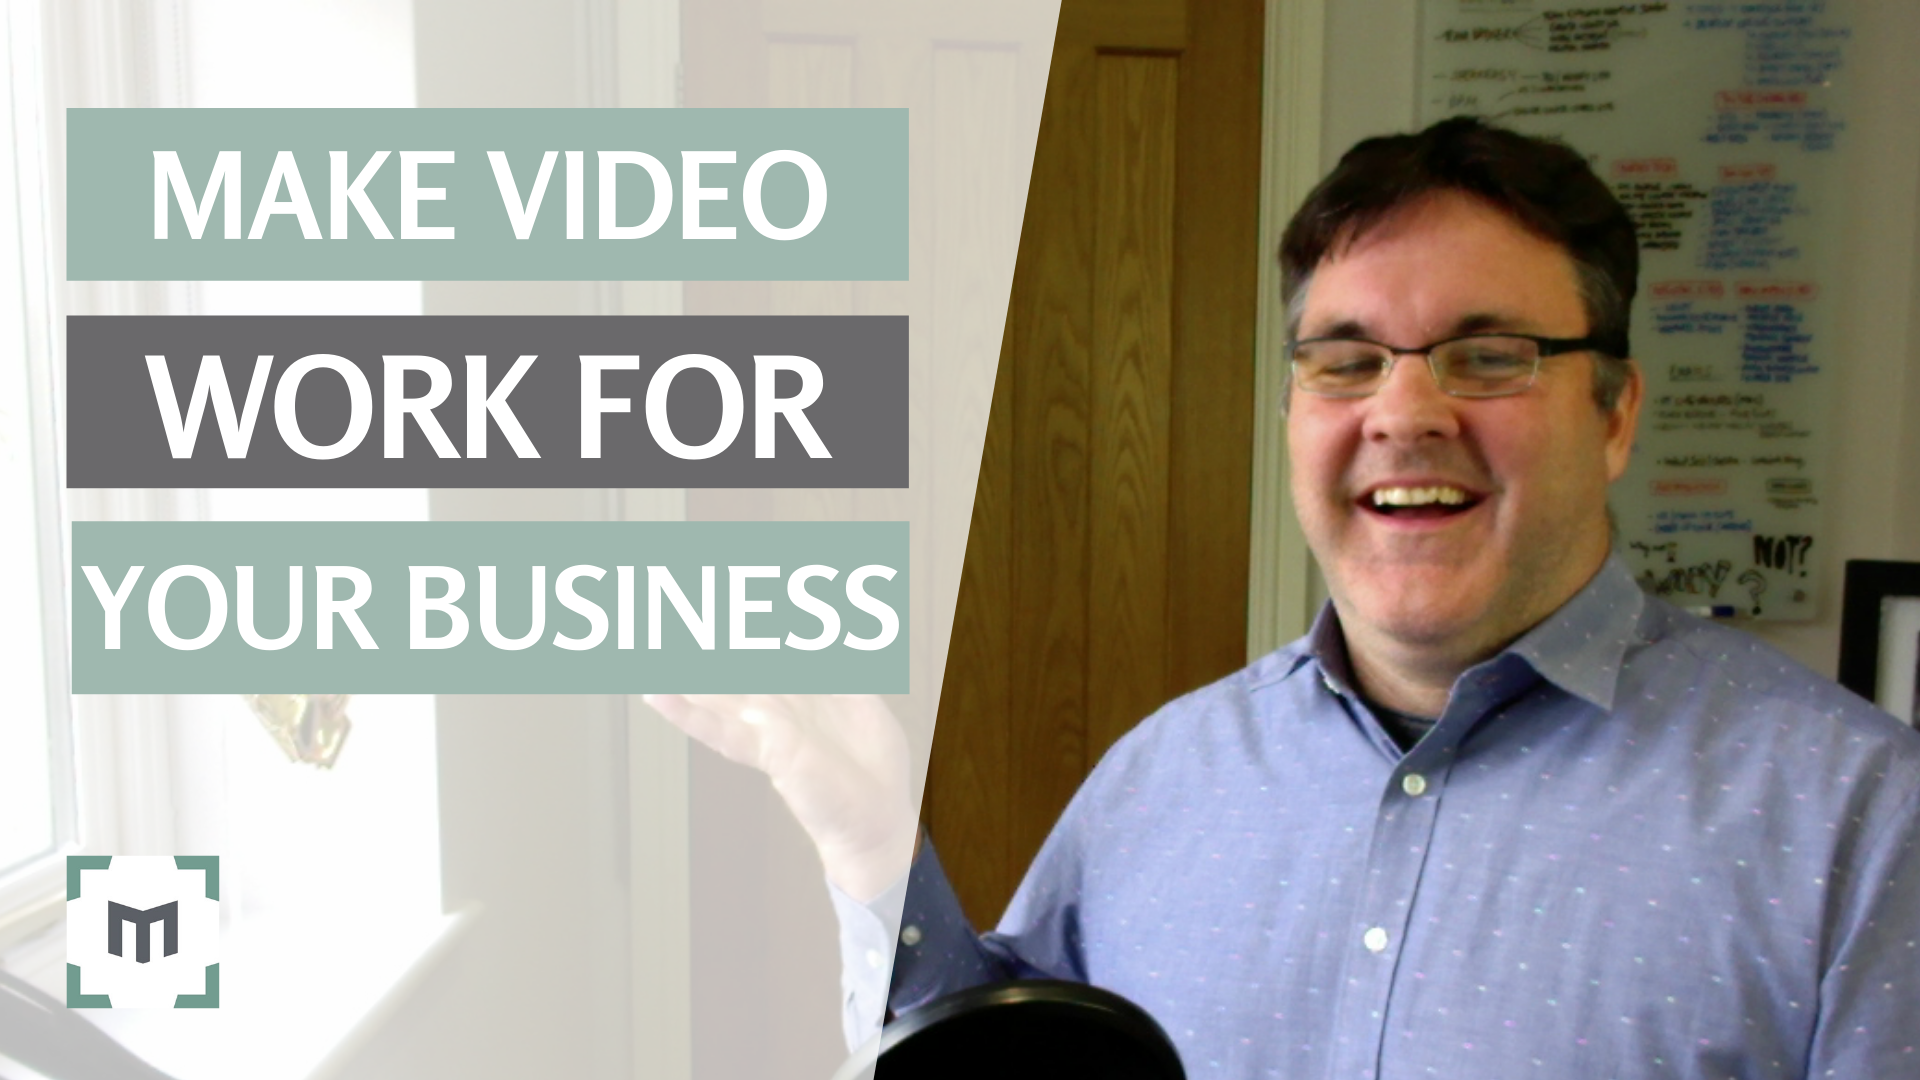 Make Video Work for Your Business. Do you want to leverage the POWER of Video Marketing for your Business? Do you want to learn the inside track on GROWING your Business with VIDEO? Then THIS is the channel for YOU.